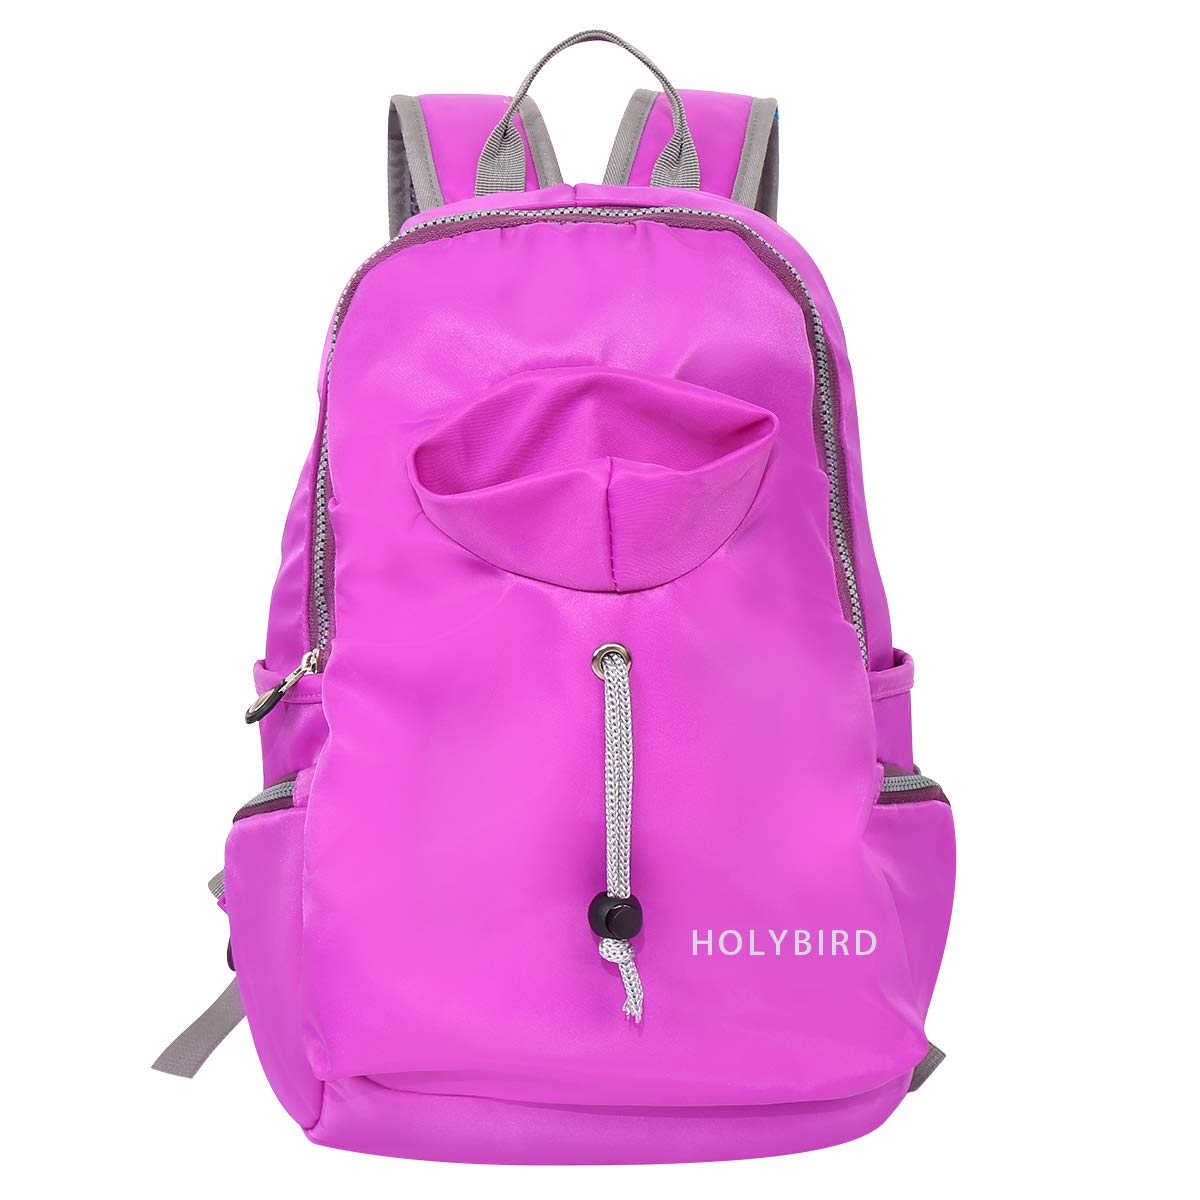 pink red HOLYBIRD Waterproof Backpack PU Leather Mini Women Purse for School Shopping Dating